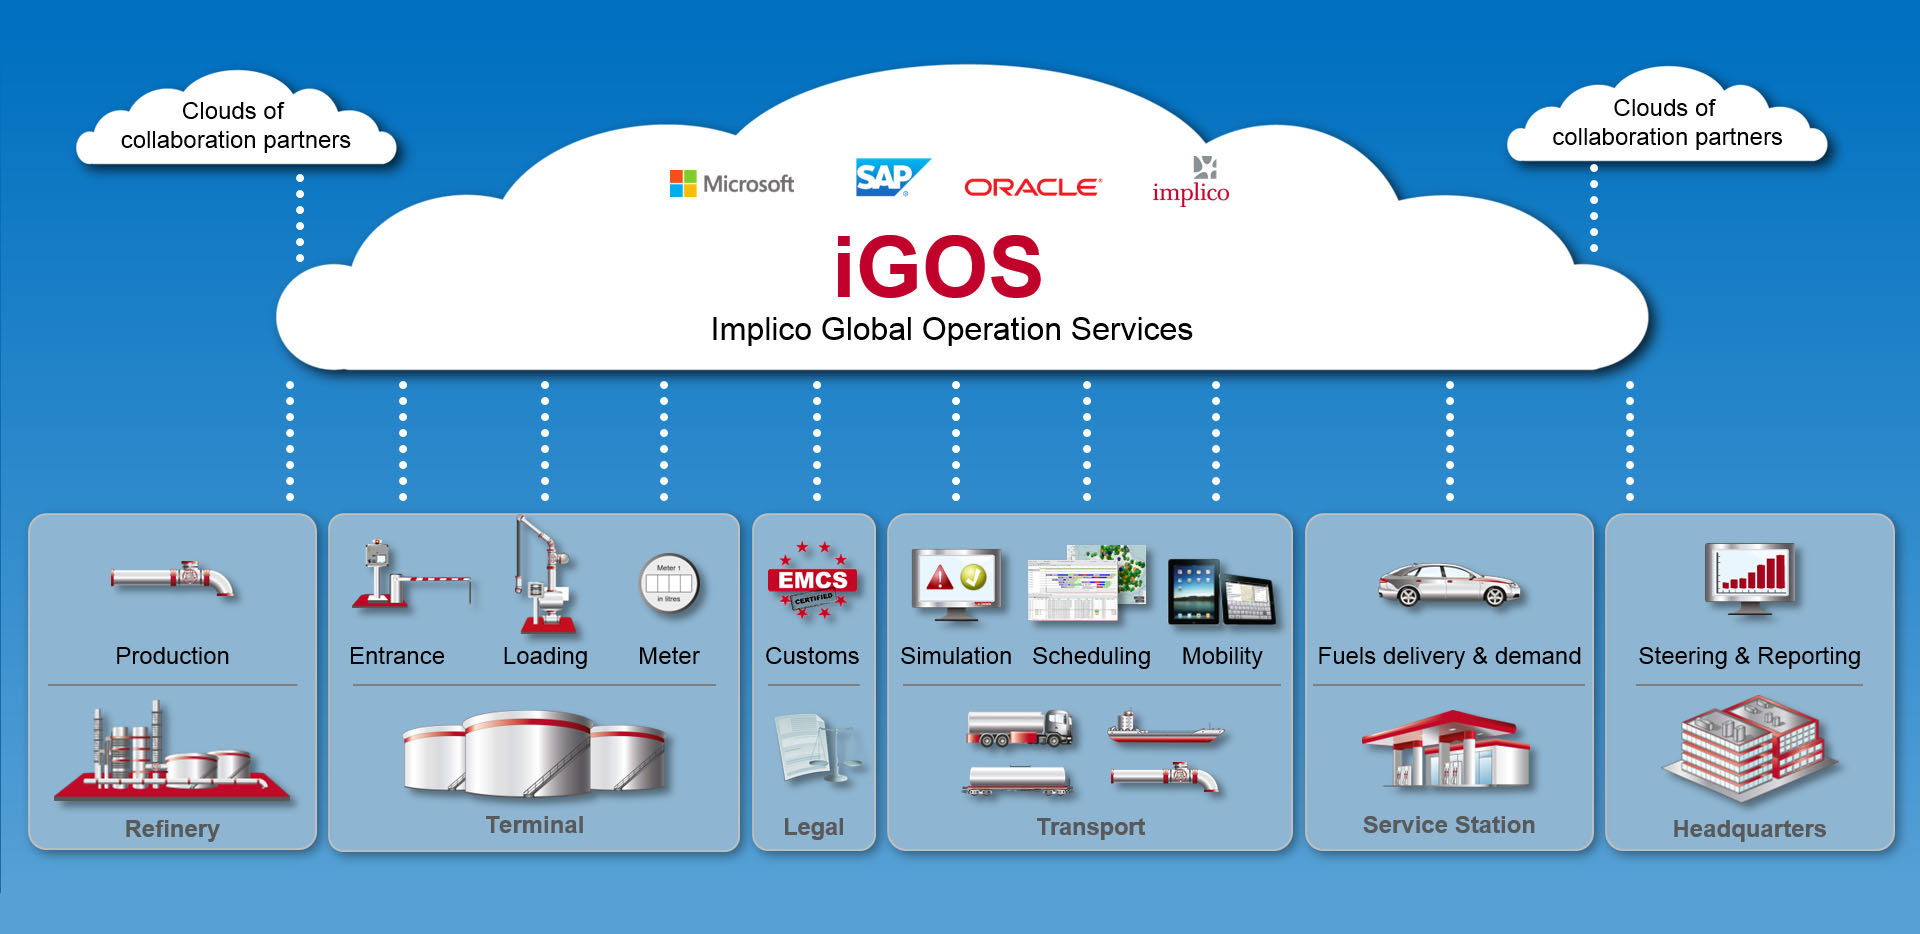 Implico Global Operation Services